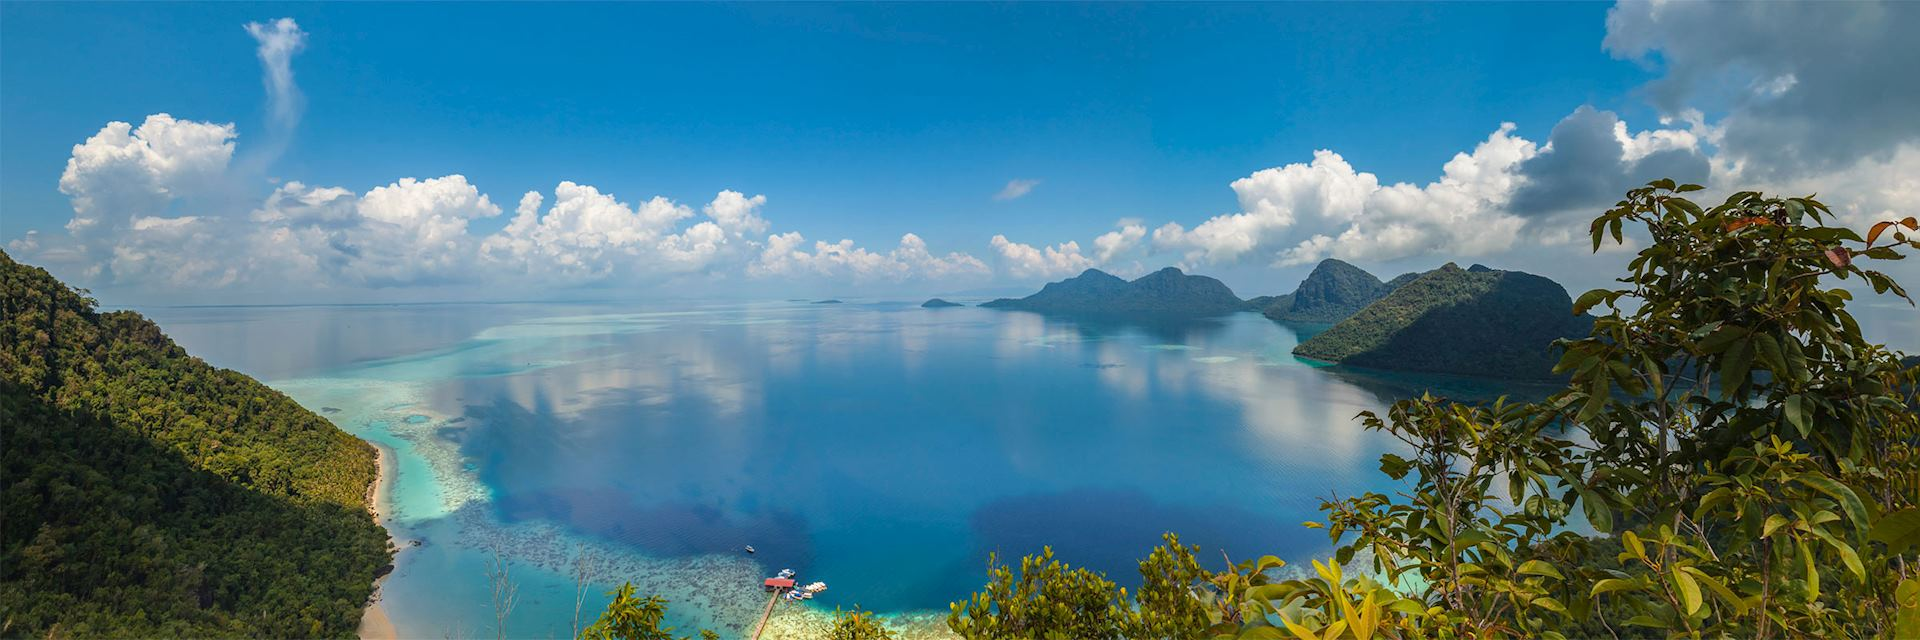 Coral reef and islands, Borneo